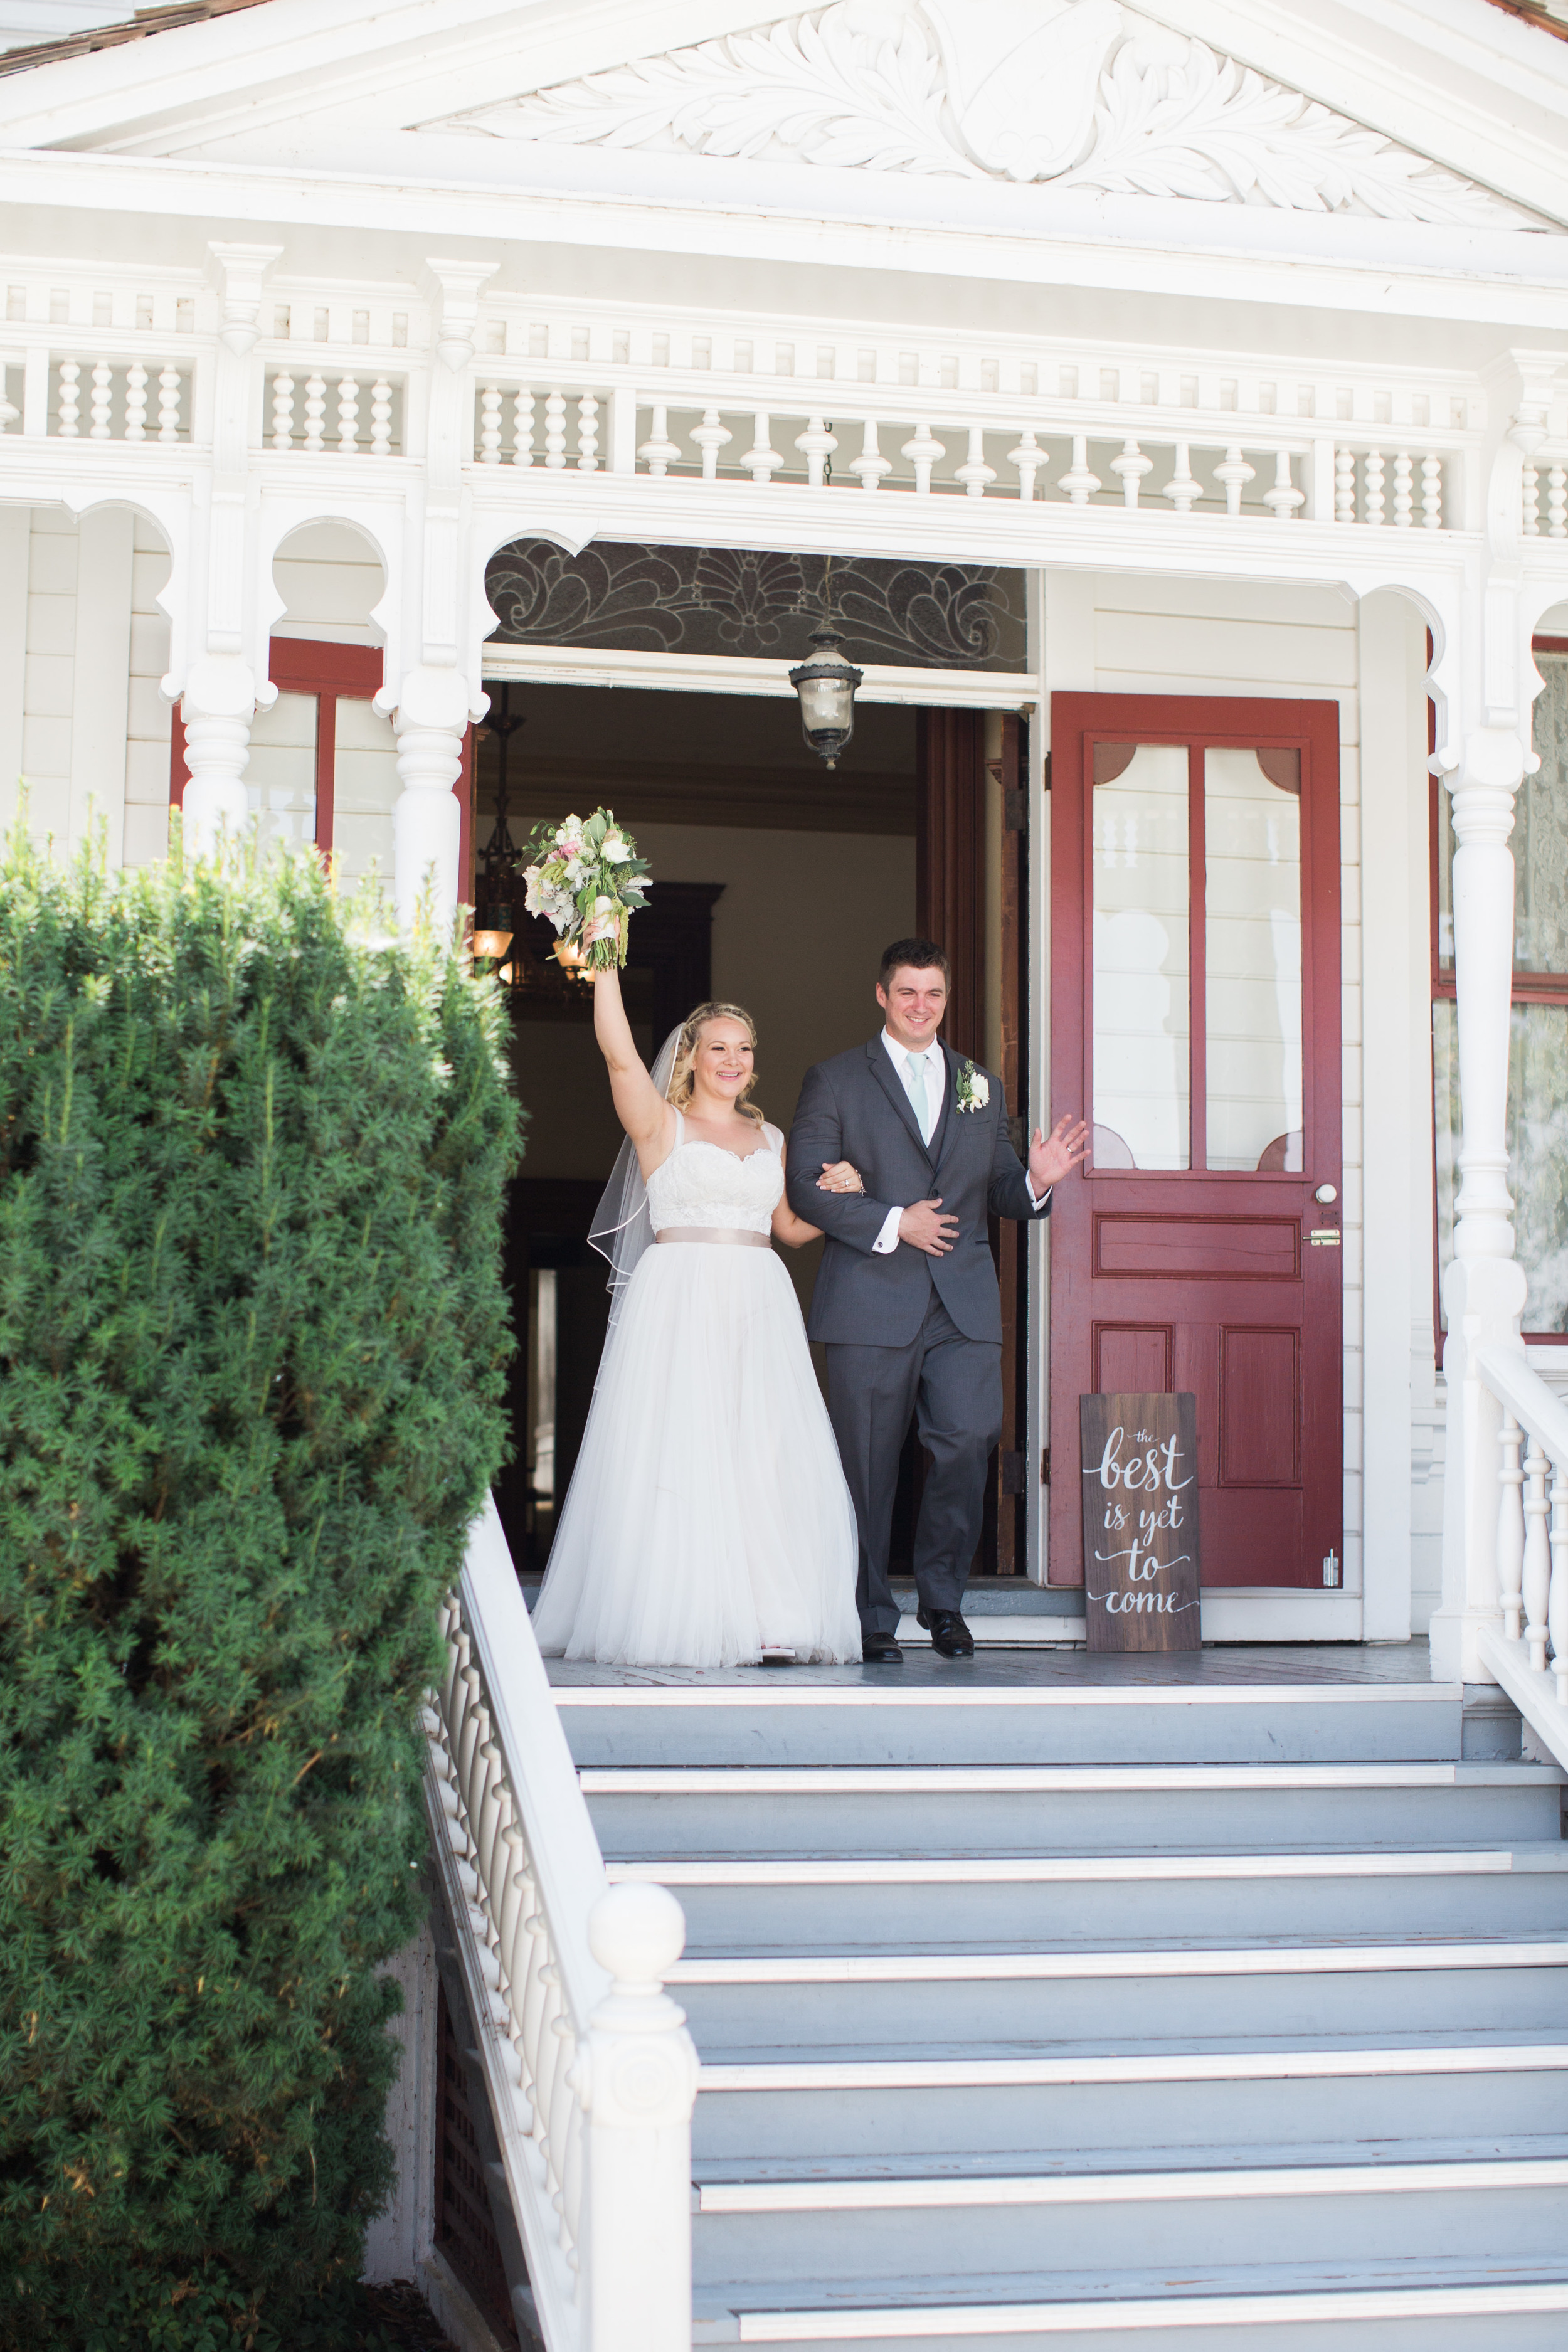 southern-inspired-wedding-at-ravenswood-historic-site-5118.jpg